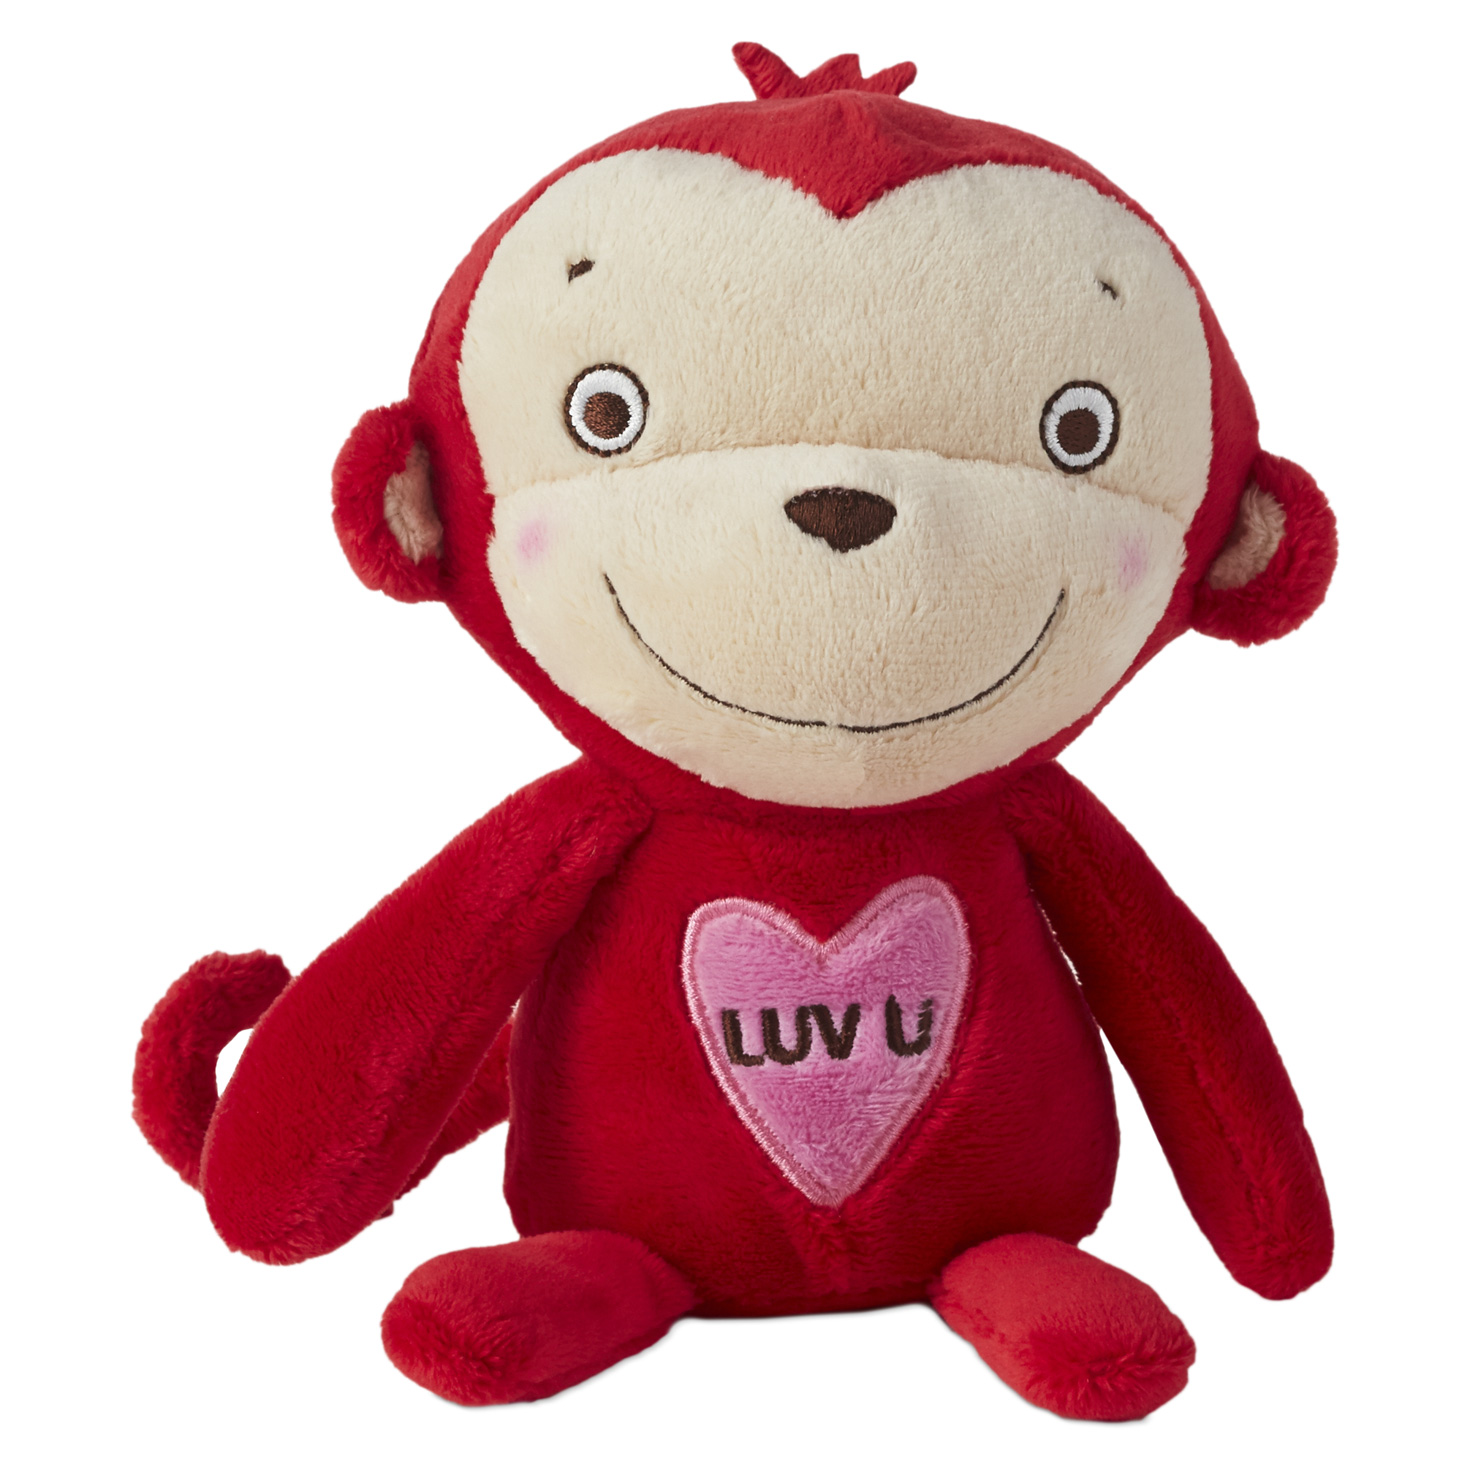 Luv Monkey Stuffed Animal by Hallmark